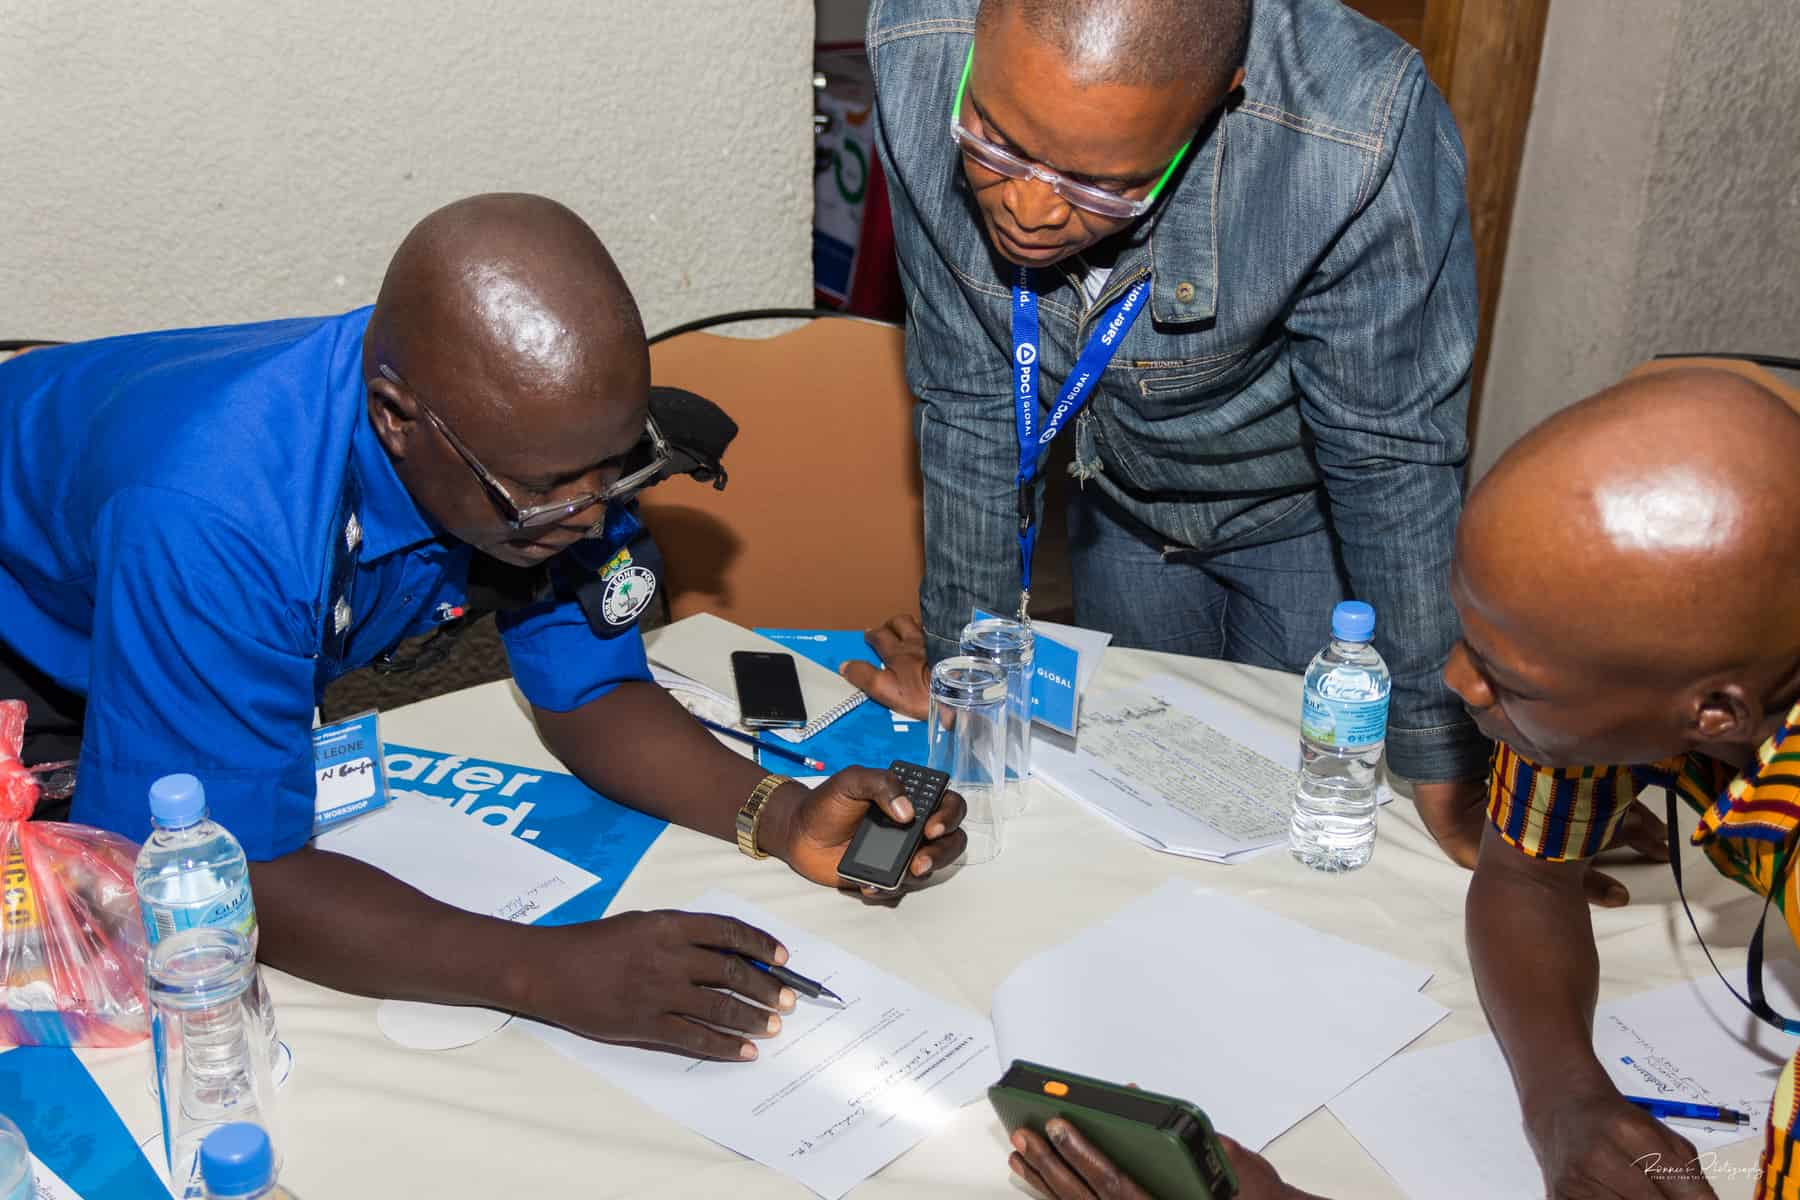 Disaster preparedness initiative advances in Sierra Leone with tabletop flood exercise and risk assessment